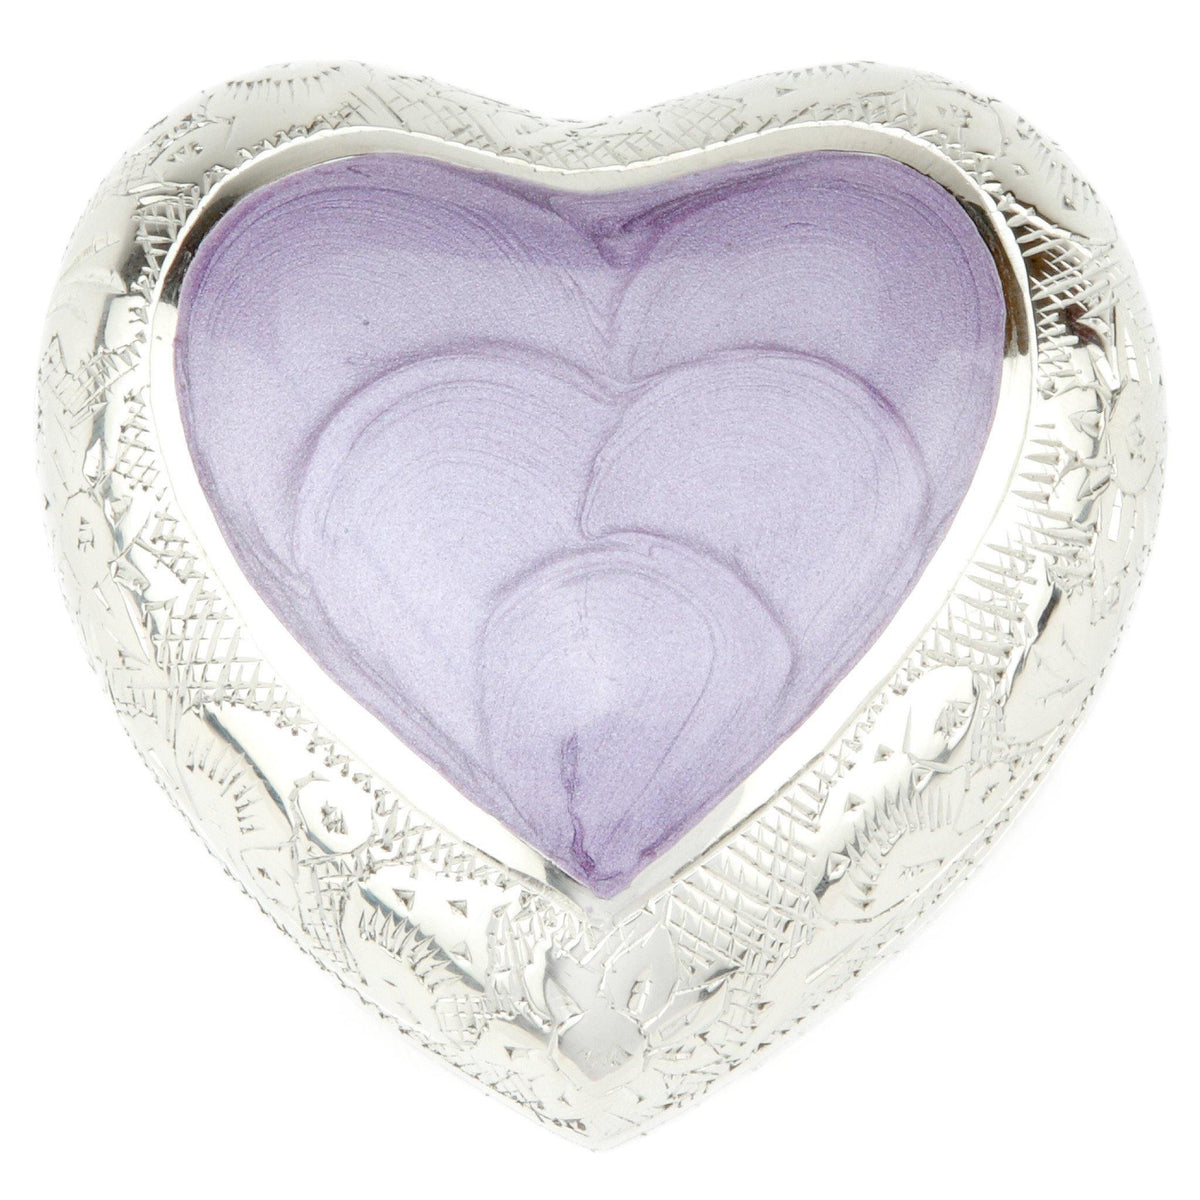 Pimlico Purple Heart Cremation Ashes Keepsake Mini Urn - Urns UK